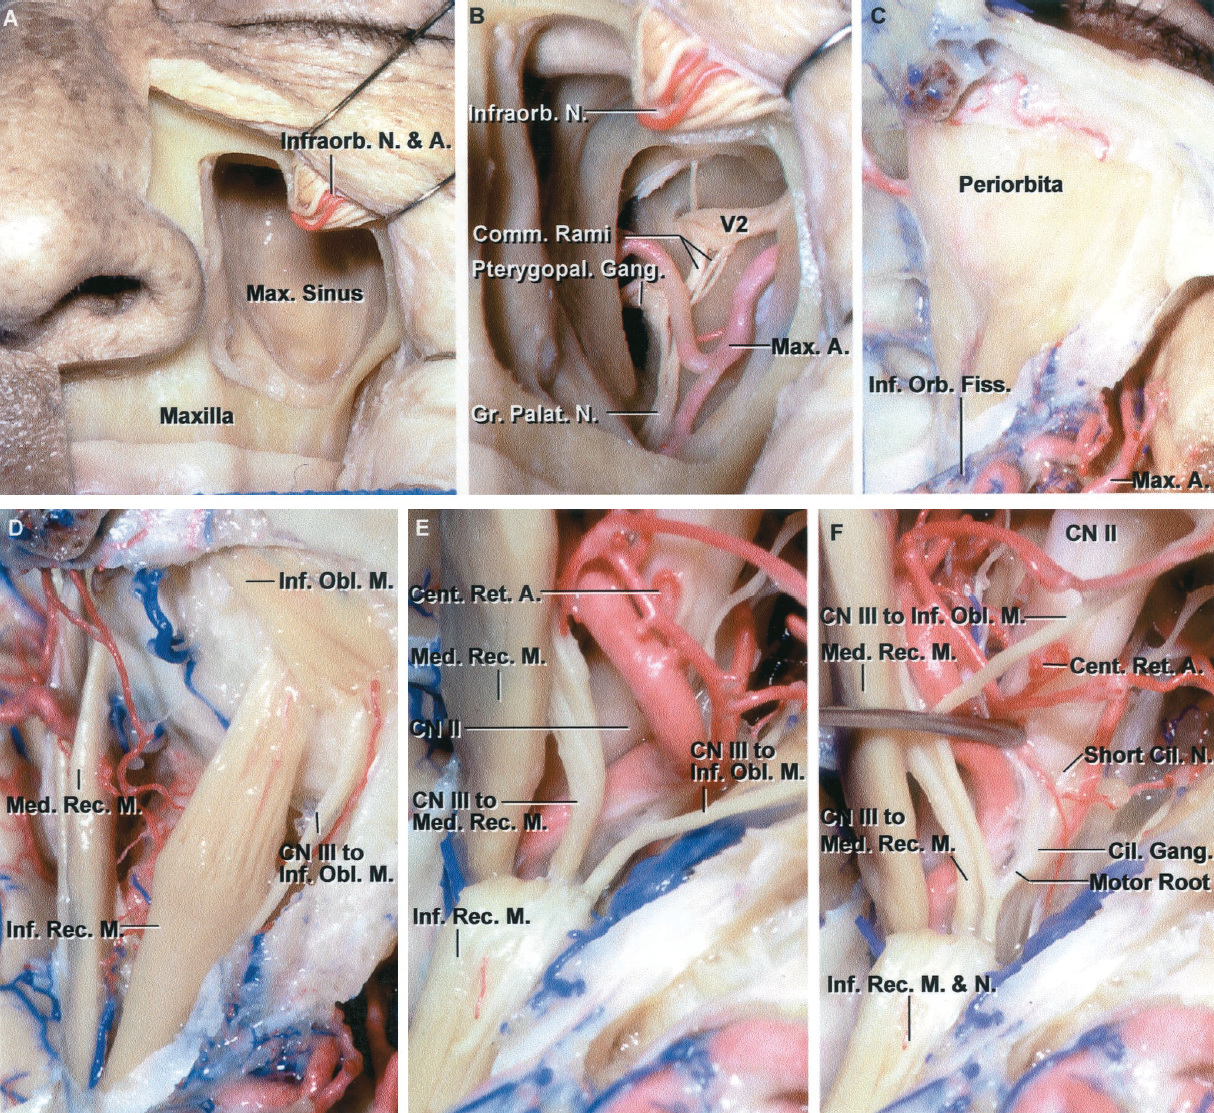 FIGURE 7.12. Transmaxillary exposure of the orbit. A, this approach is usually performed through a degloving incision in the buccogingival junction rather than through an incision along the margin of the nose. The upper lip and cheek flap have been reflected laterally and the anterior wall of the maxilla has been opened to expose the maxillary sinus. B, enlarged view. The posterior wall of the maxillary sinus has been removed to expose the pterygopalatine fossa. The maxillary nerve enters the pterygopalatine fossa by passing through the foramen rotundum, where it gives rise to communicating rami to the pterygopalatine ganglion and infraorbital and palatine nerves. The terminal branches of the maxillary artery also course through the pterygopalatine fossa. C, inferior view of another orbit after the orbital floor has been removed and the infraorbital nerve reflected posteriorly to expose the periorbita and orbital fat. D, the orbital fat has been removed to expose the medial and inferior rectus and inferior oblique muscles. The inferior oblique muscle arises from the medial orbital wall and passes laterally below the inferior rectus muscle to insert on the sclera. The branch of the inferior division of the oculomotor nerve to the inferior oblique muscle courses along the lateral side of the inferior rectus muscle. E,the inferior rectus muscle has been divided and reflected backward. The ophthalmic artery, in this case, courses below the optic nerve, as occurs in approximately 15% of orbits. The inferior division of the oculomotor nerve gives rise to individual branches to the medial rectus, inferior oblique, and inferior rectus muscles. A tortuous central retinal artery arises below and enters the lower margin of the optic nerve. F, the ophthalmic artery has been retracted medially to expose the origin of the parasympathetic motor root to the ciliary ganglion, which courses from the branch of the inferior oculomotor division to the inferior oblique. The ganglion give